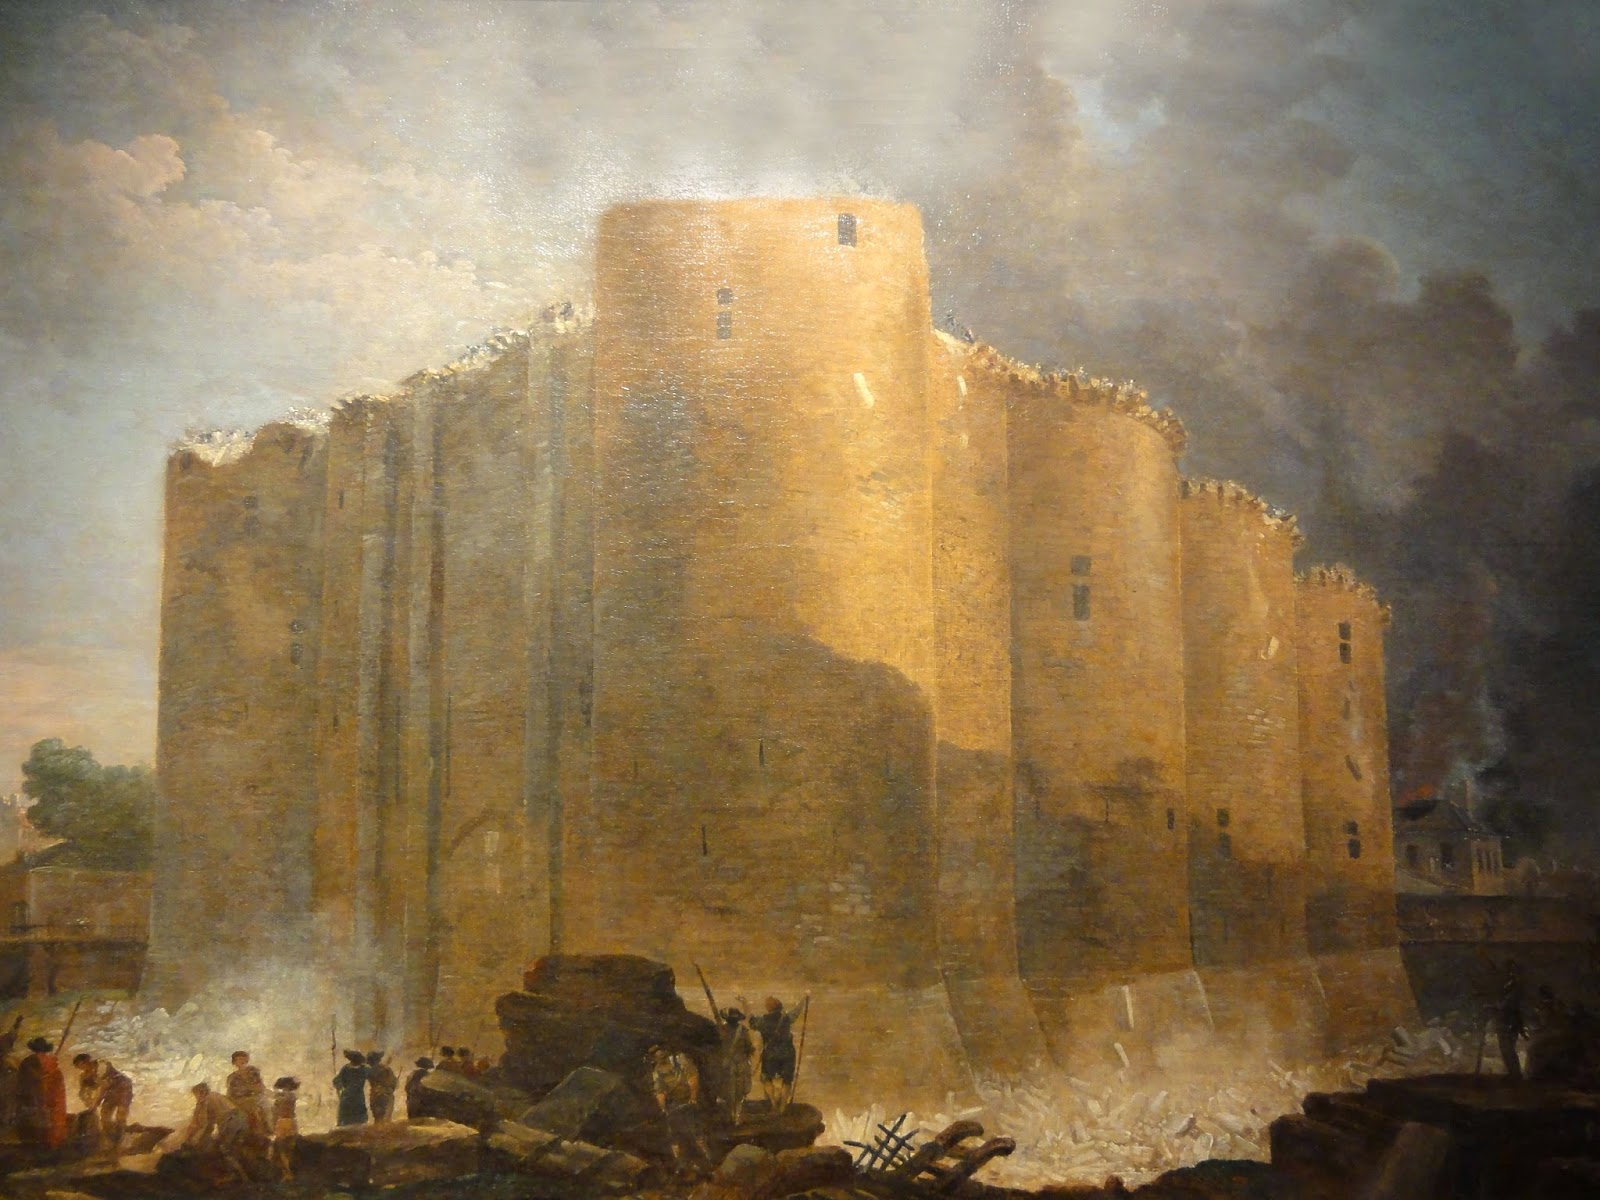 a history of the destruction of the bastille The storming of the bastille: the history and legacy of the most famous flashpoint of the french revolution: charles river editors: 9781505607048: books - amazonca.